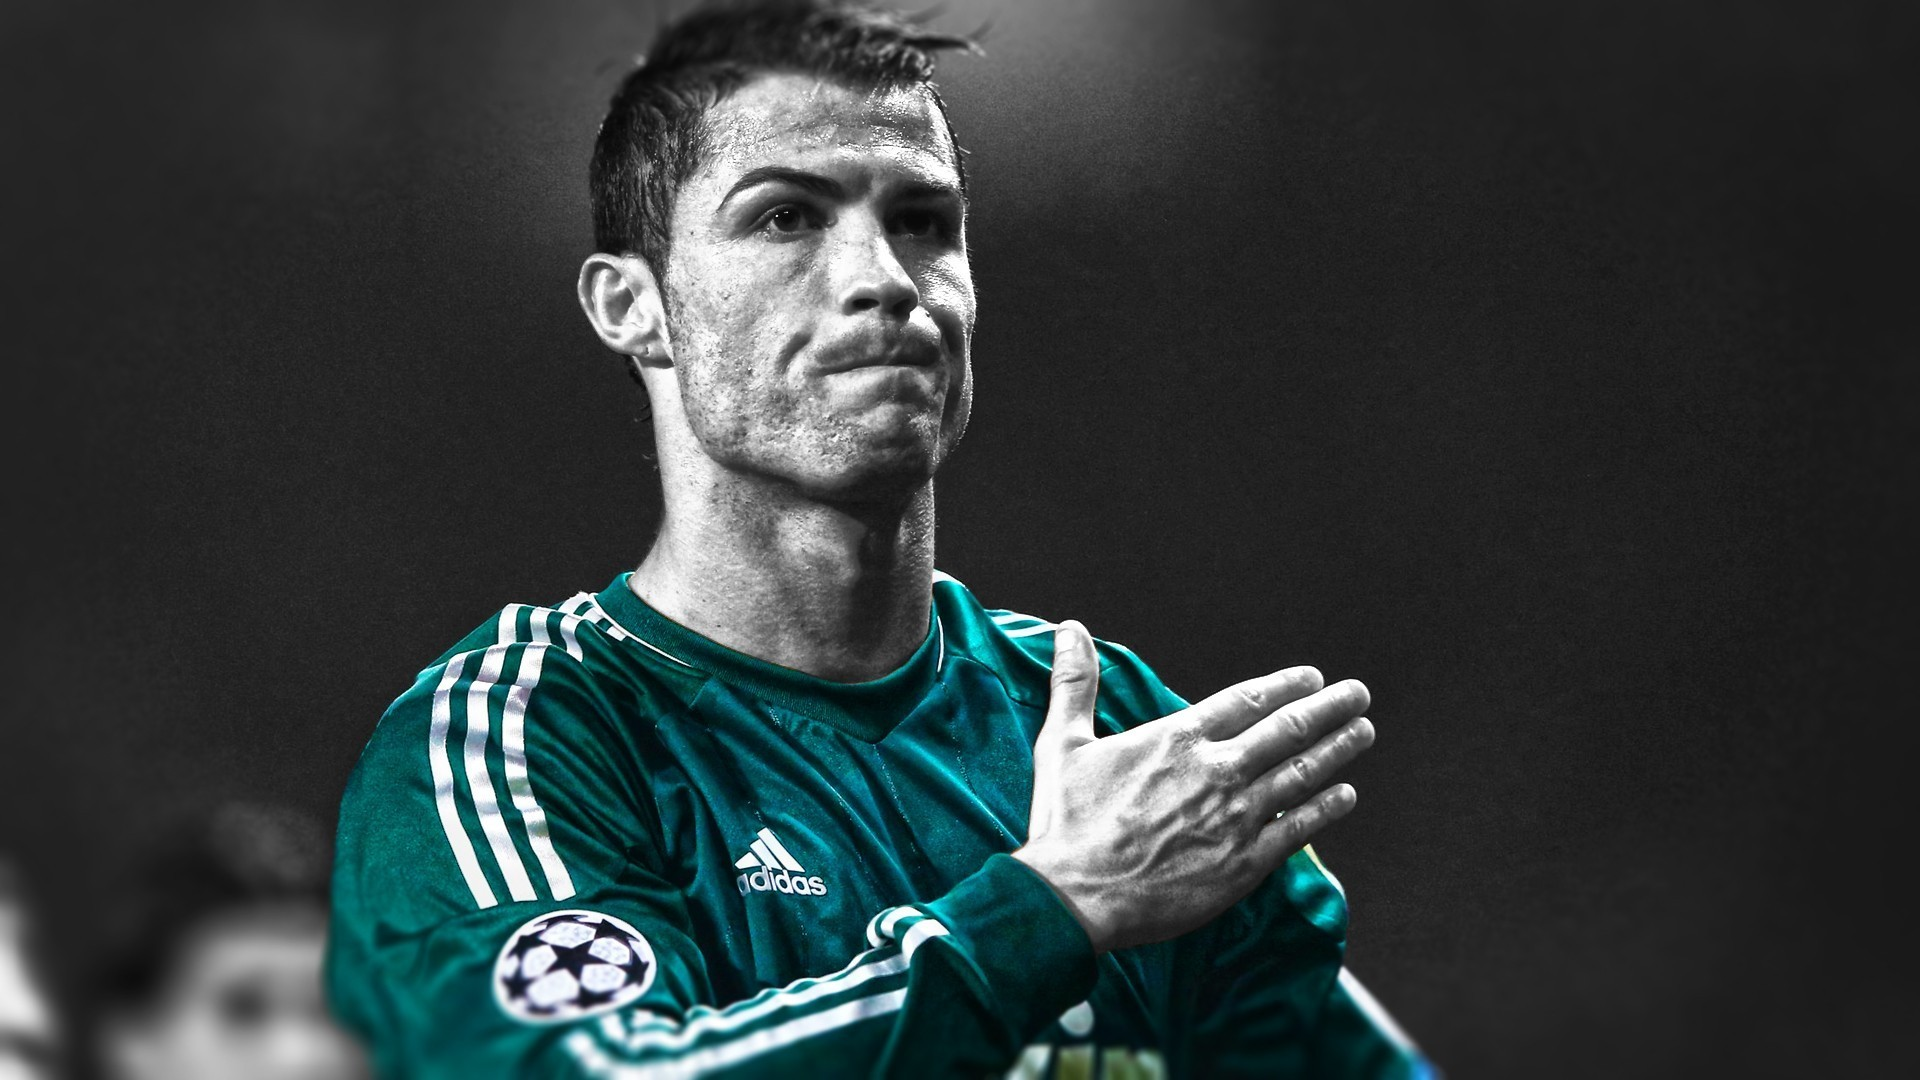 Cristiano Ronaldo HD Wallpapers & Pictures